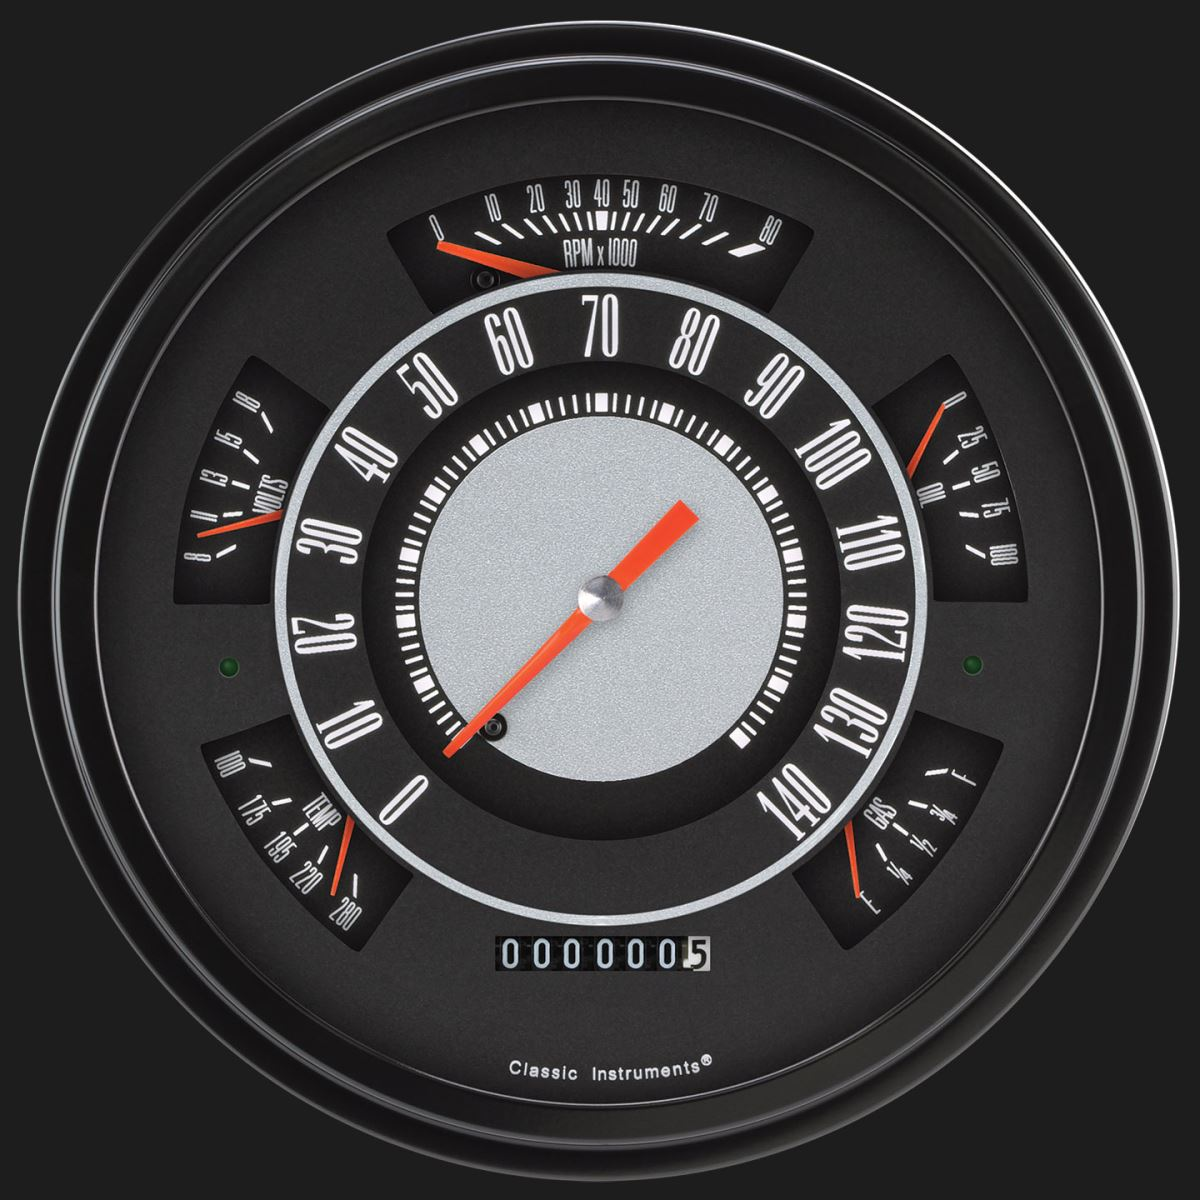 Super Tach Wiring Free Download Track Multiple Projects Equus Tachometer Diagram Pro 6 Pack Bronco Oe Bb Img 4473